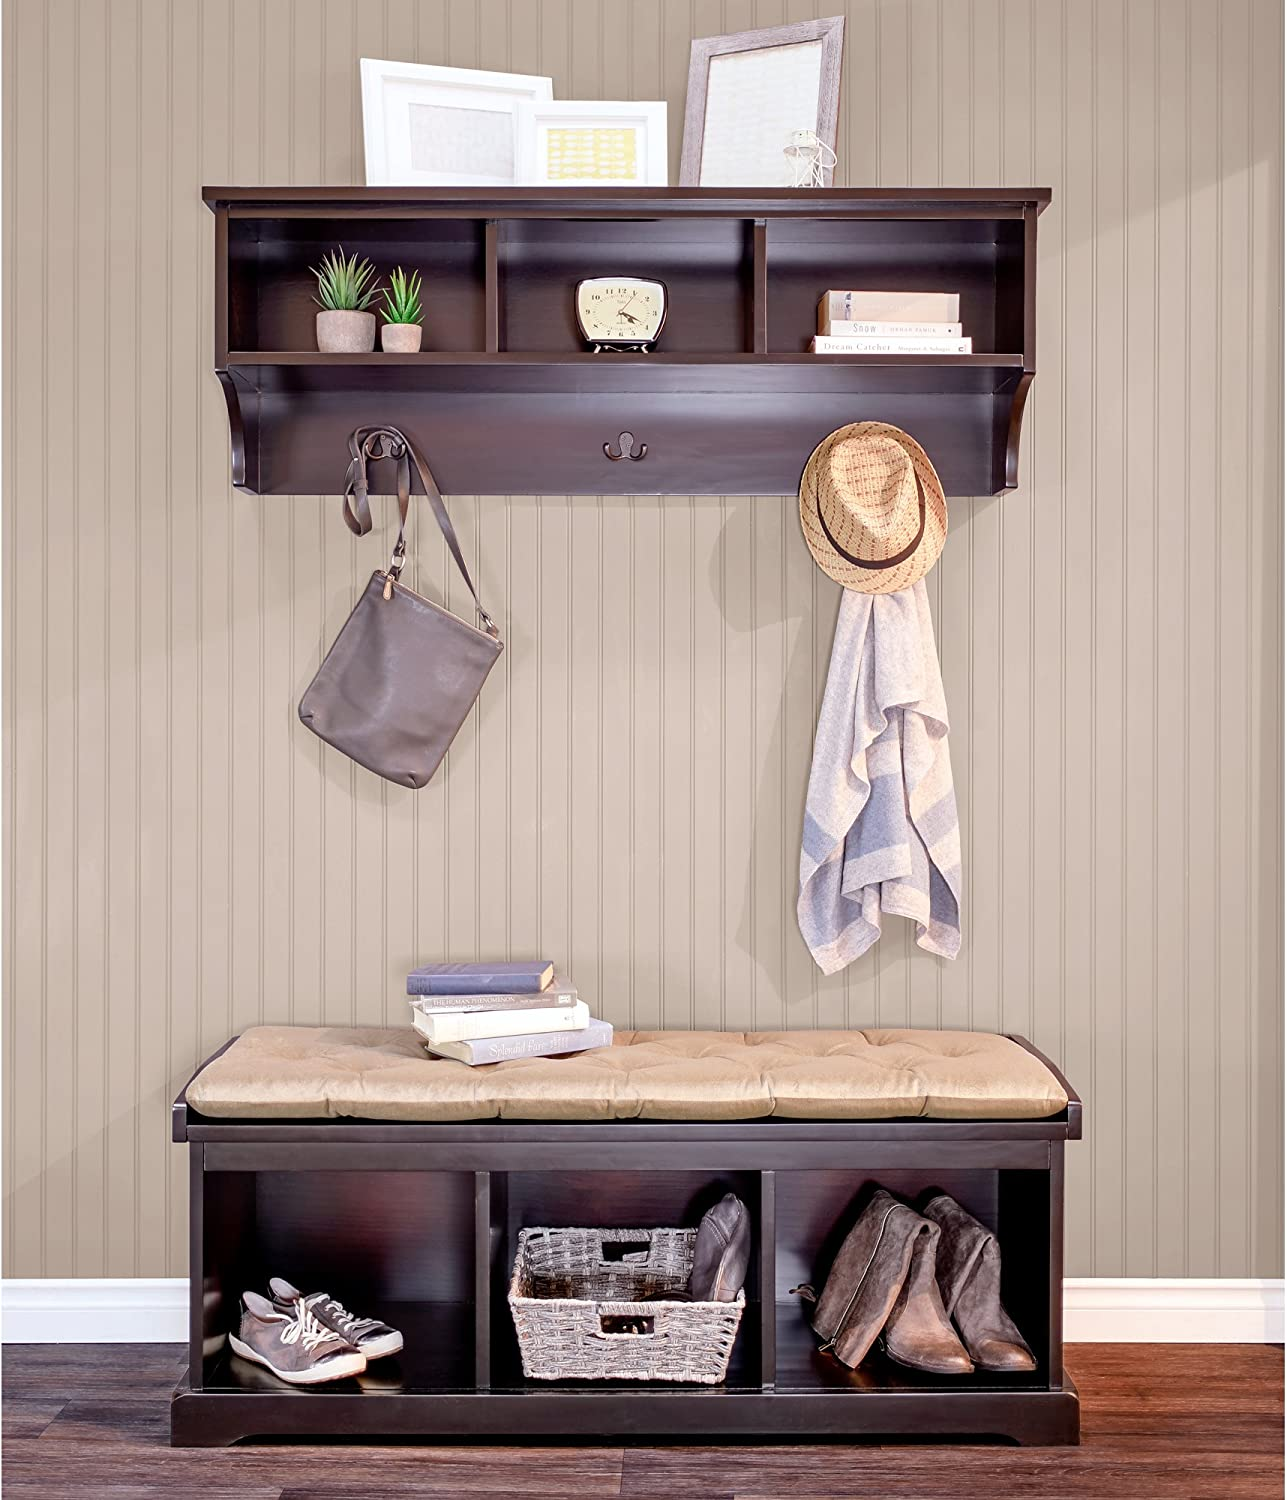 Epoch Design Brookwood Bench and Wall Unit, Coffee